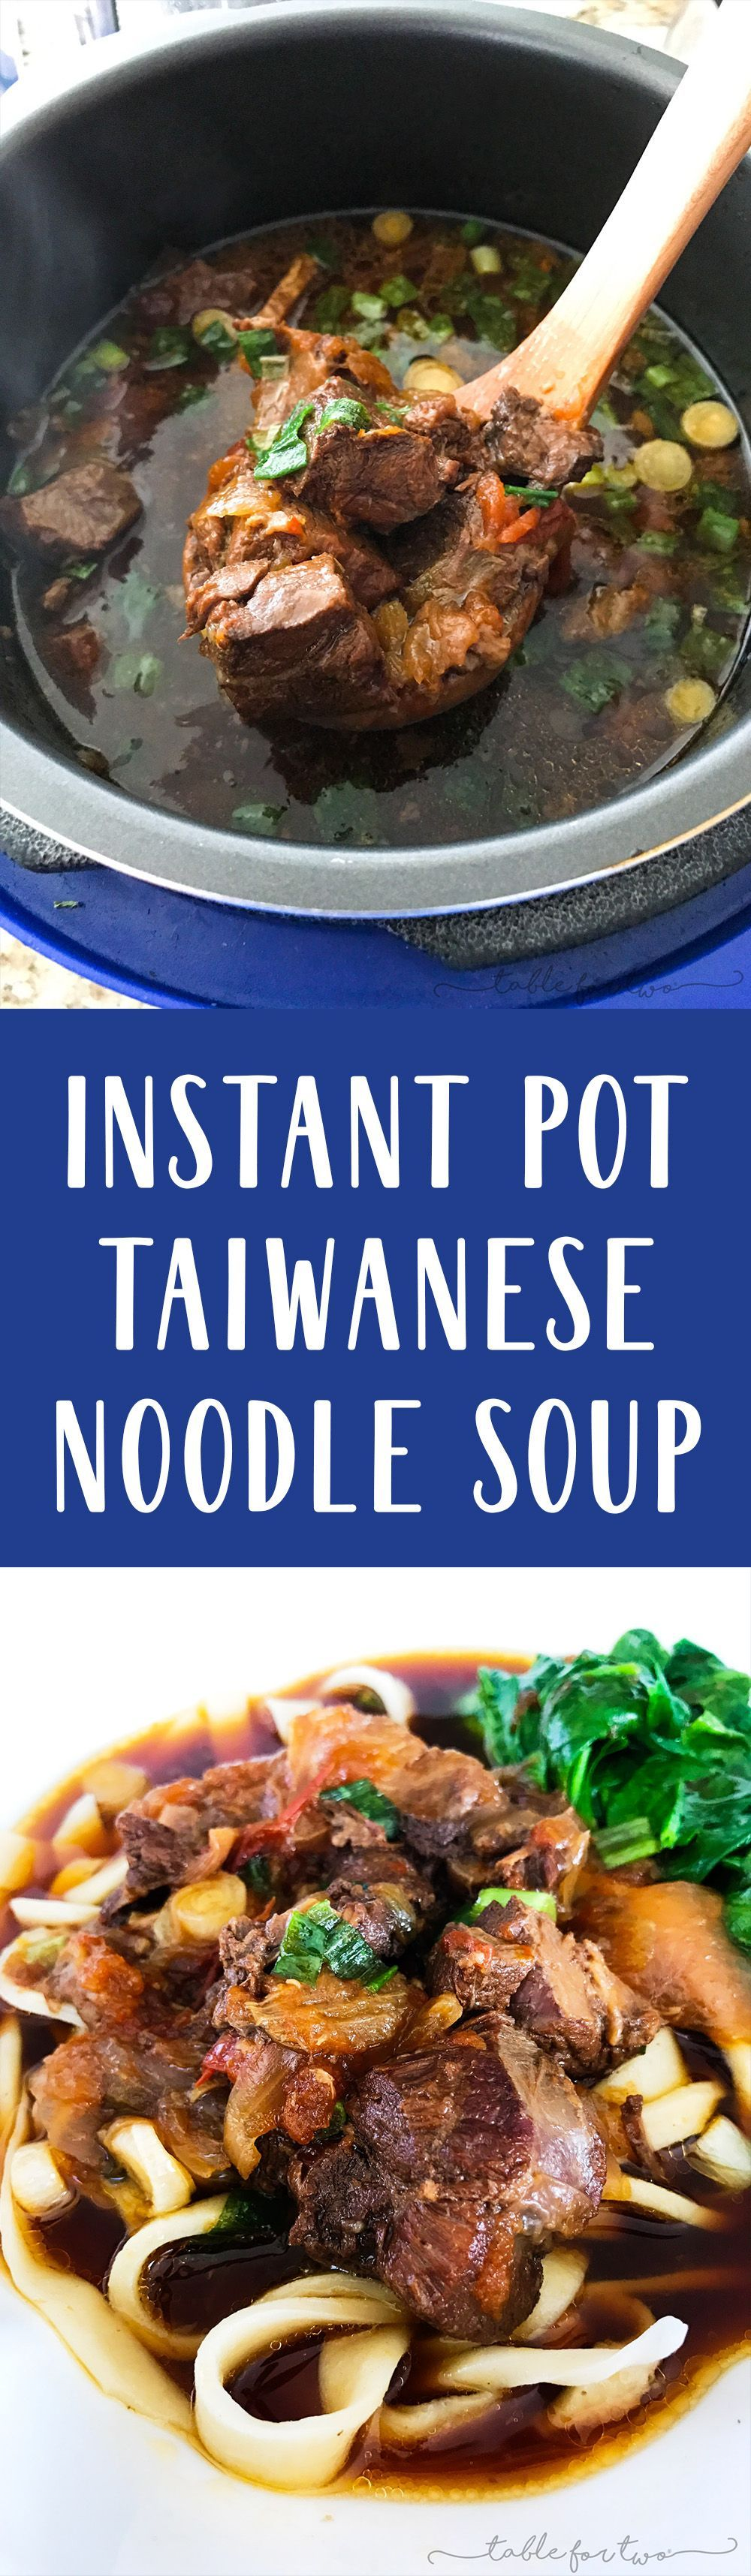 taiwanese noodle soup  instant pot or pressure cooker